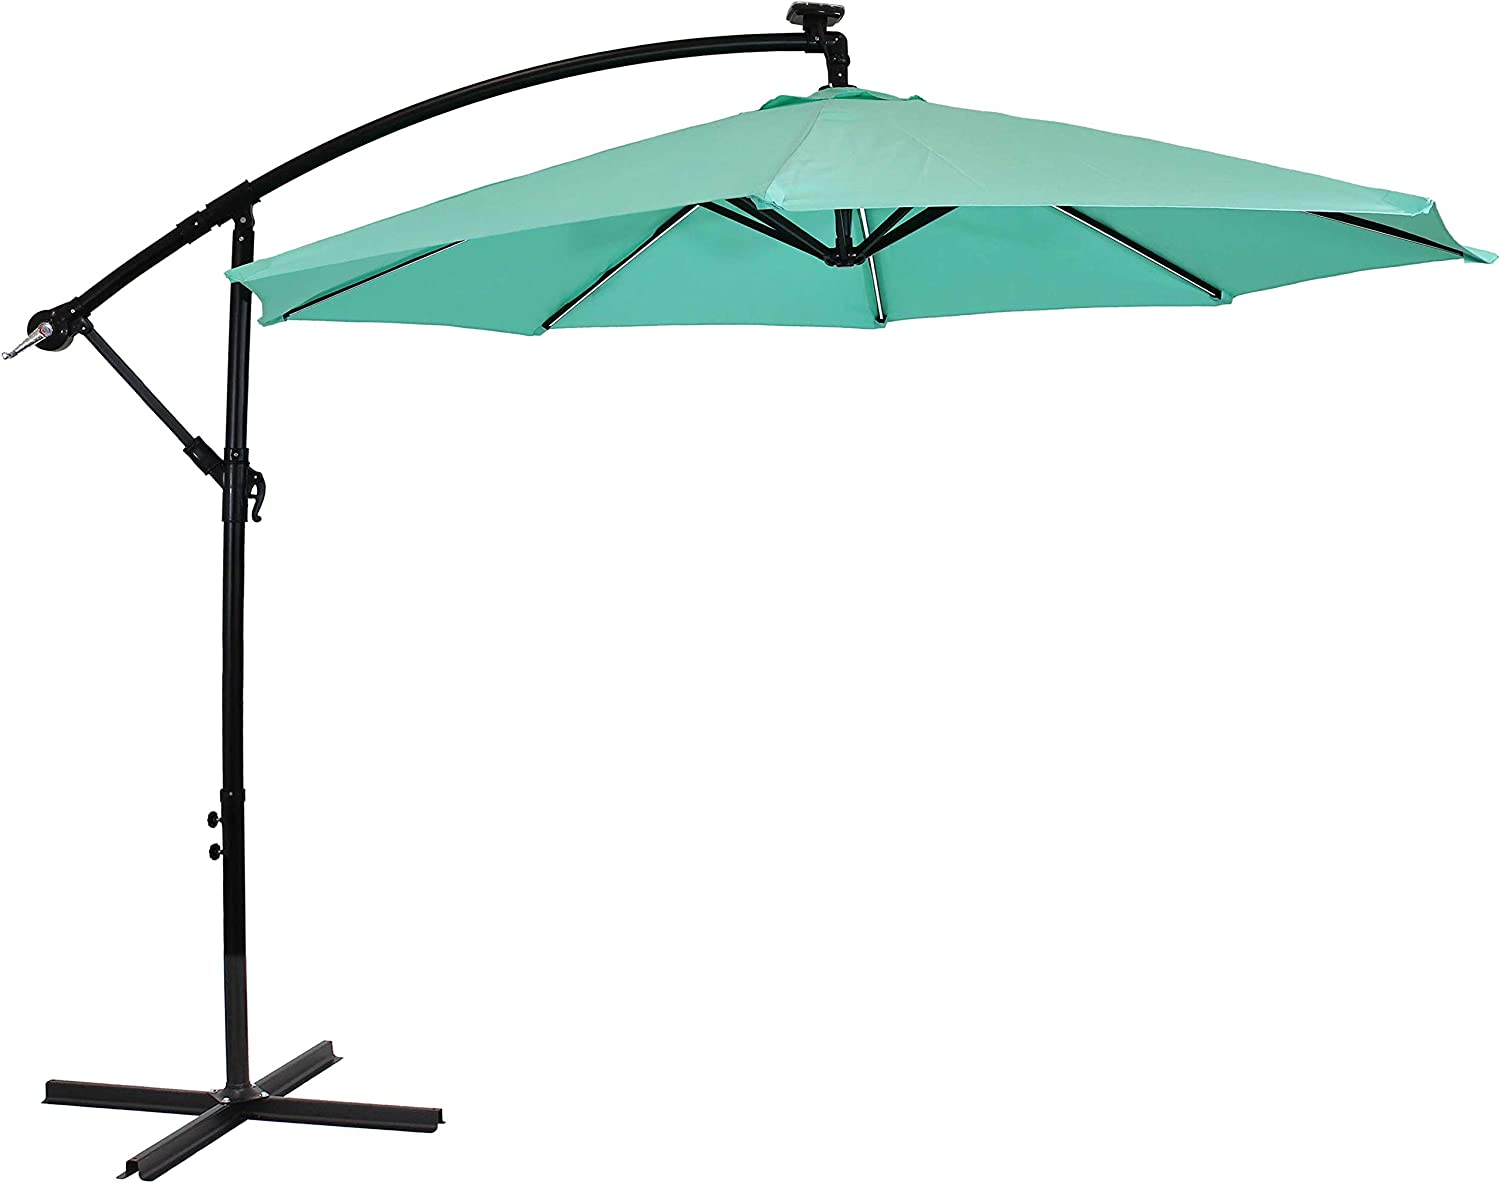 Sunnydaze Outdoor Cantilever Offset Patio Umbrella with Solar LED Lights - Outside Waterproof Polyester Shade Steel Pole - Air Vent, Cross Base and Crank - 9-Foot - Seafoam